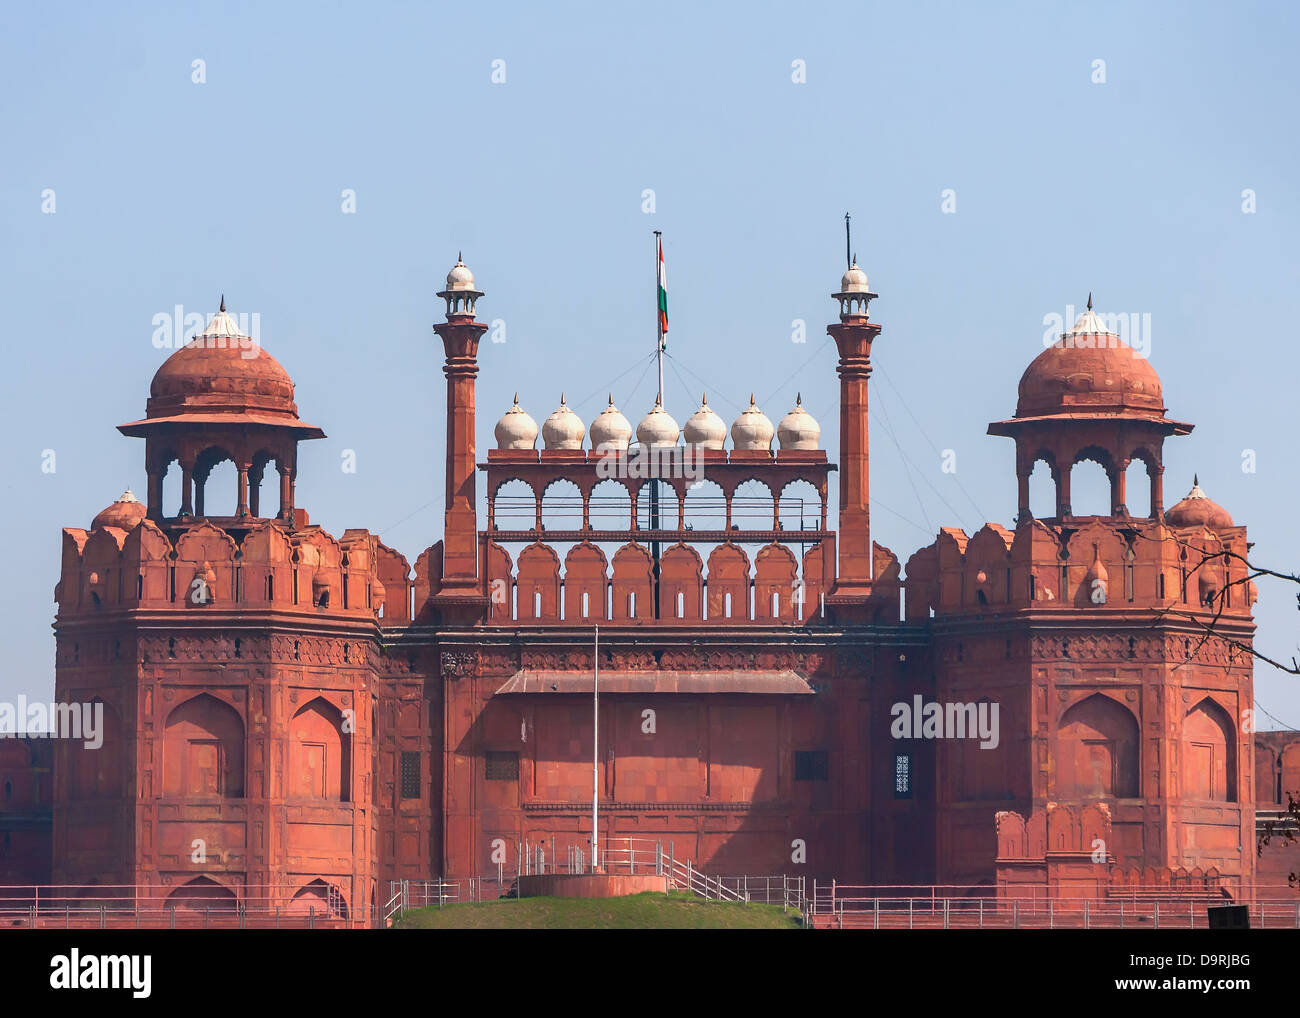 The Lahore Gate of the Red Fort in Delhi. - Stock Image